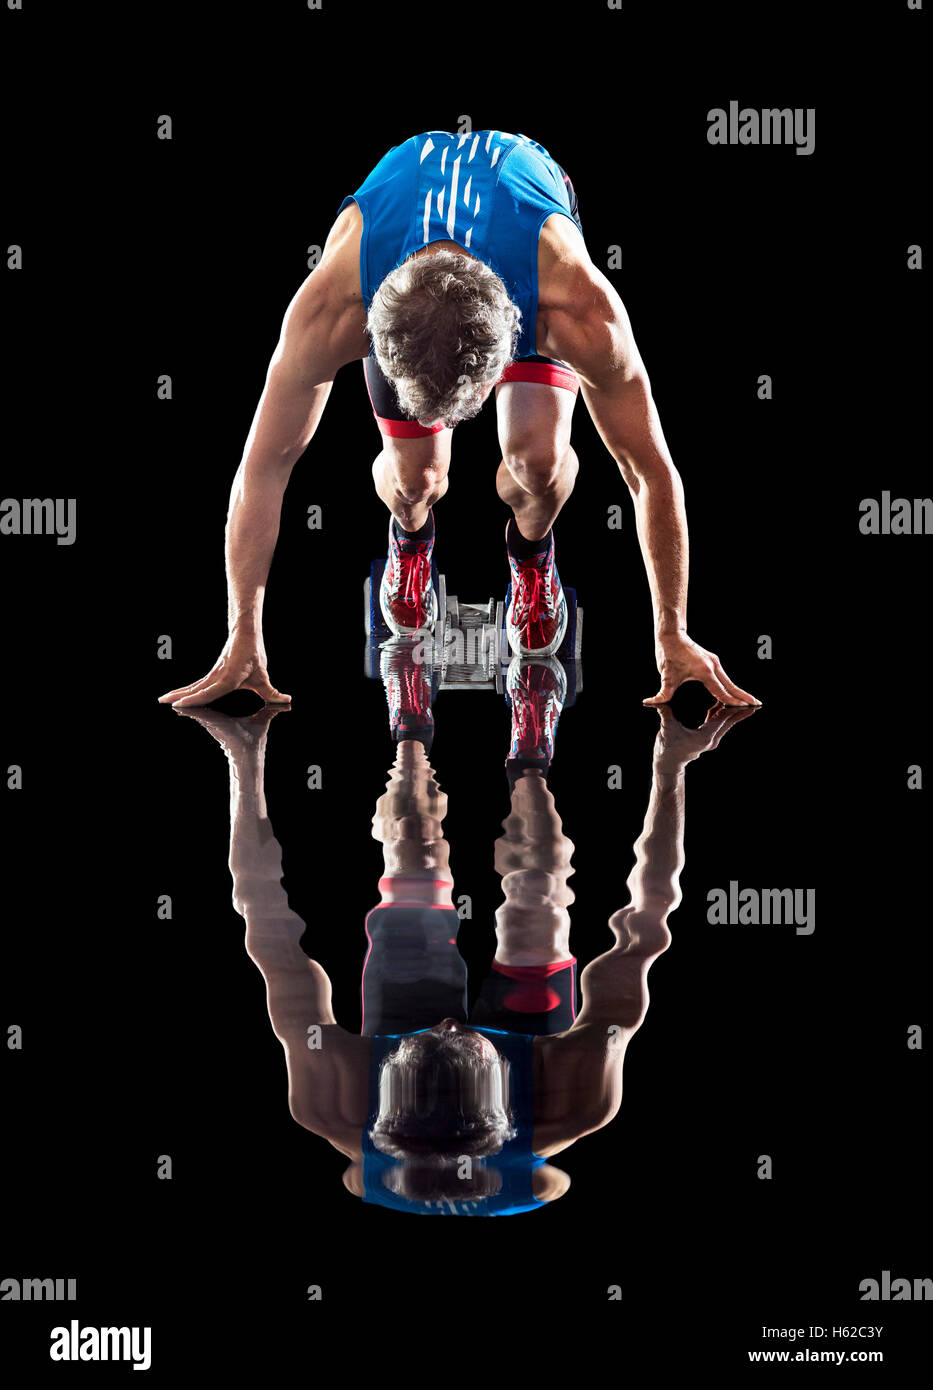 Runner in starting position reflected in water - Stock Image